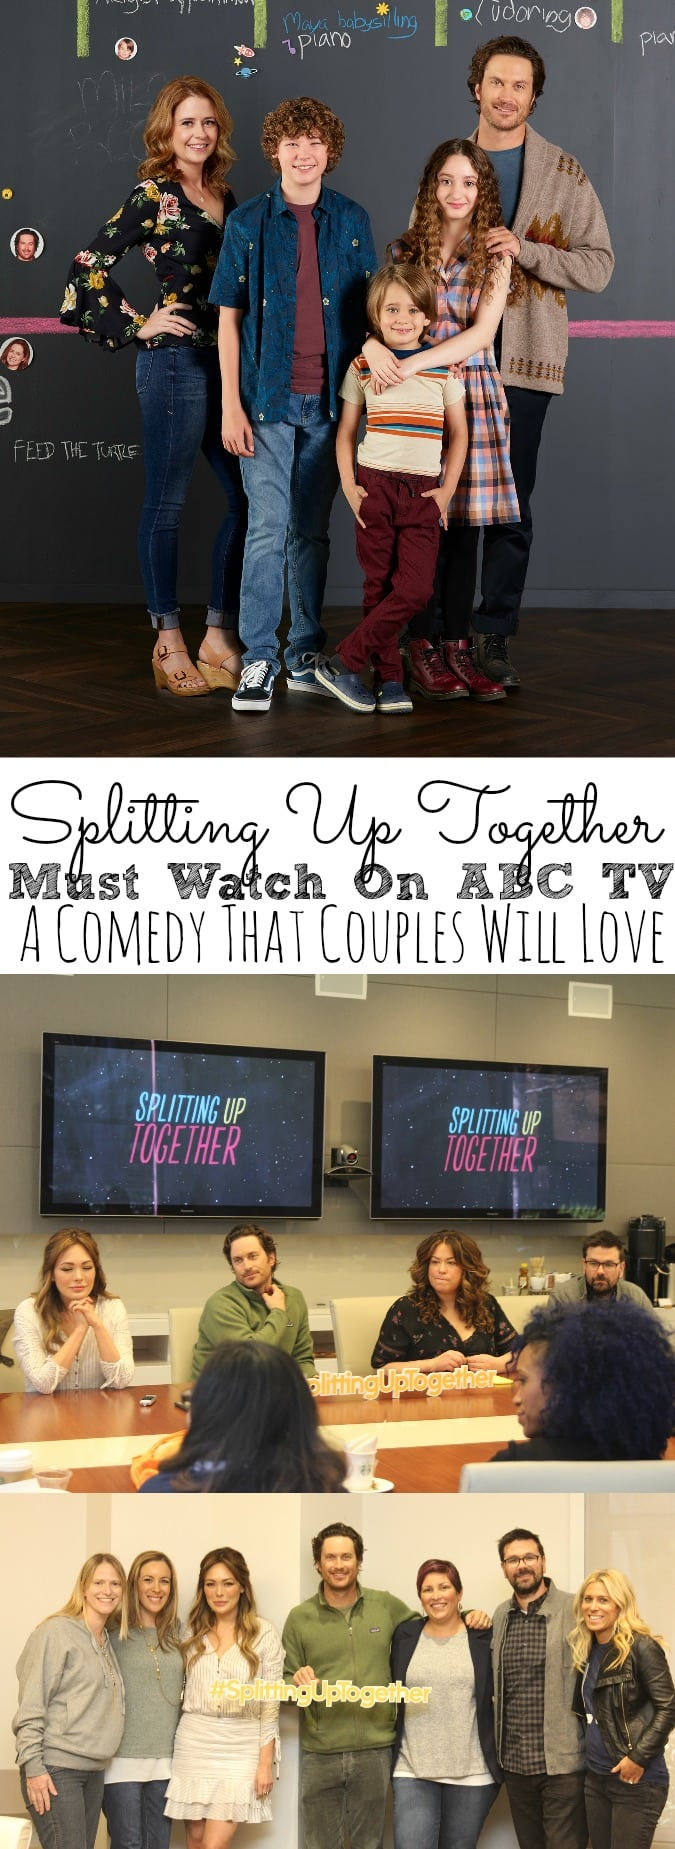 Splitting Up Together Premieres on ABC